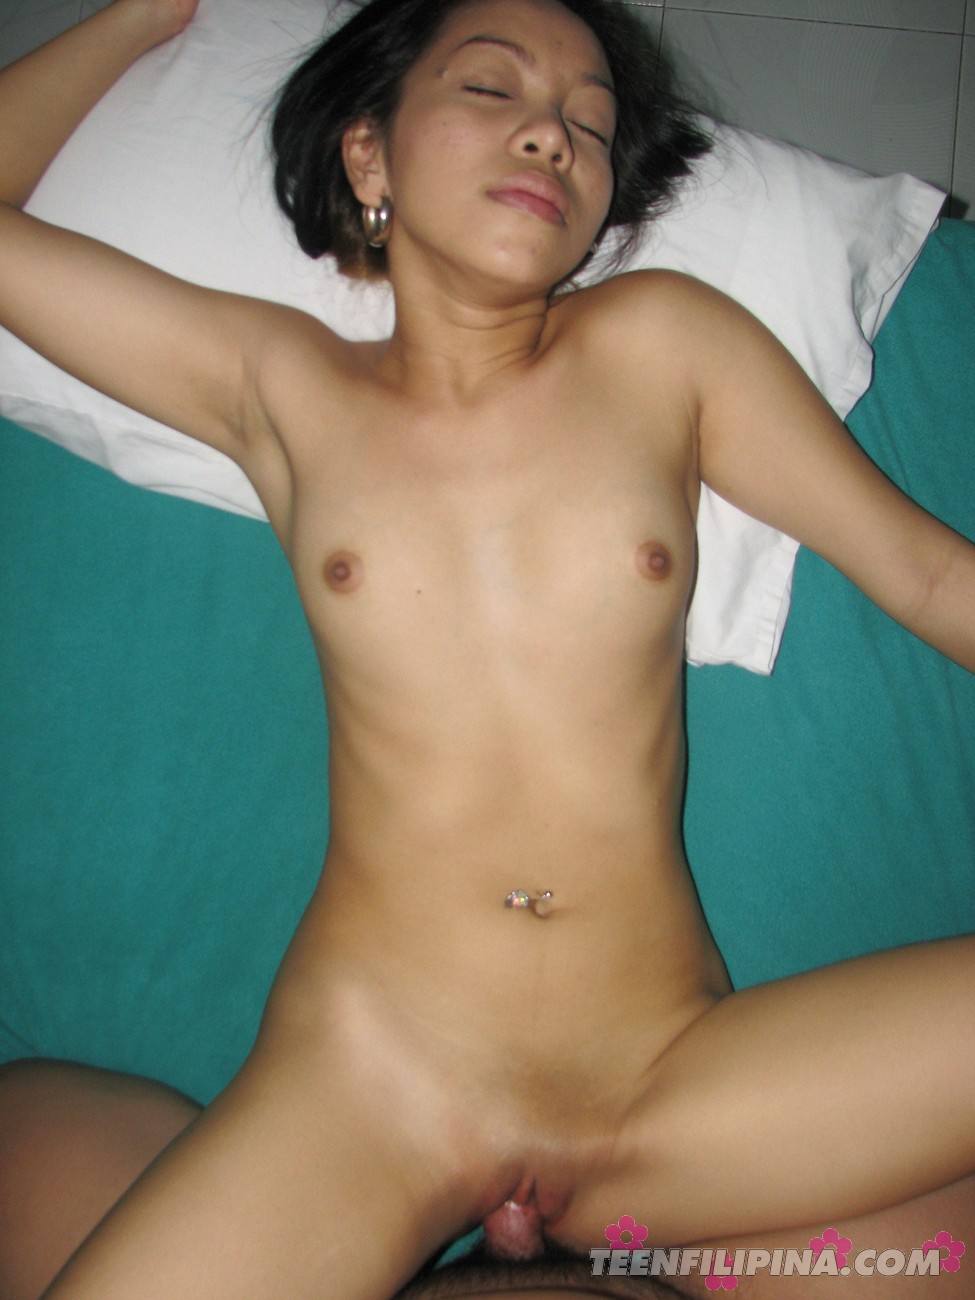 Hot nude girl fingering